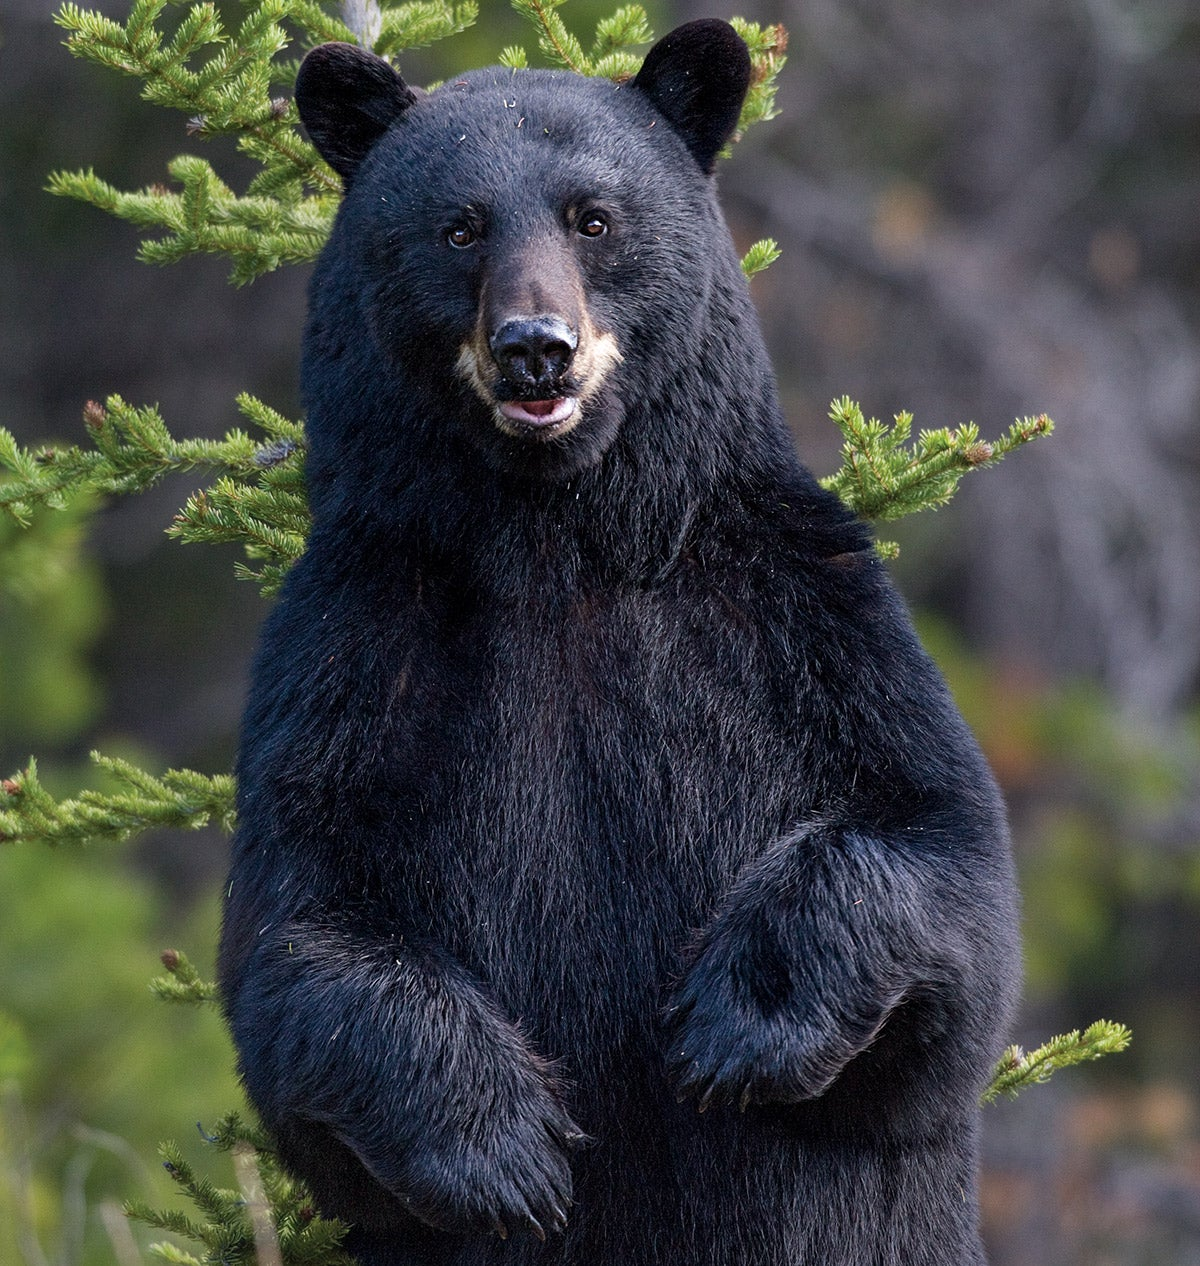 How the Humane Society of the United States Could Win the Maine Bear Hunting Battle